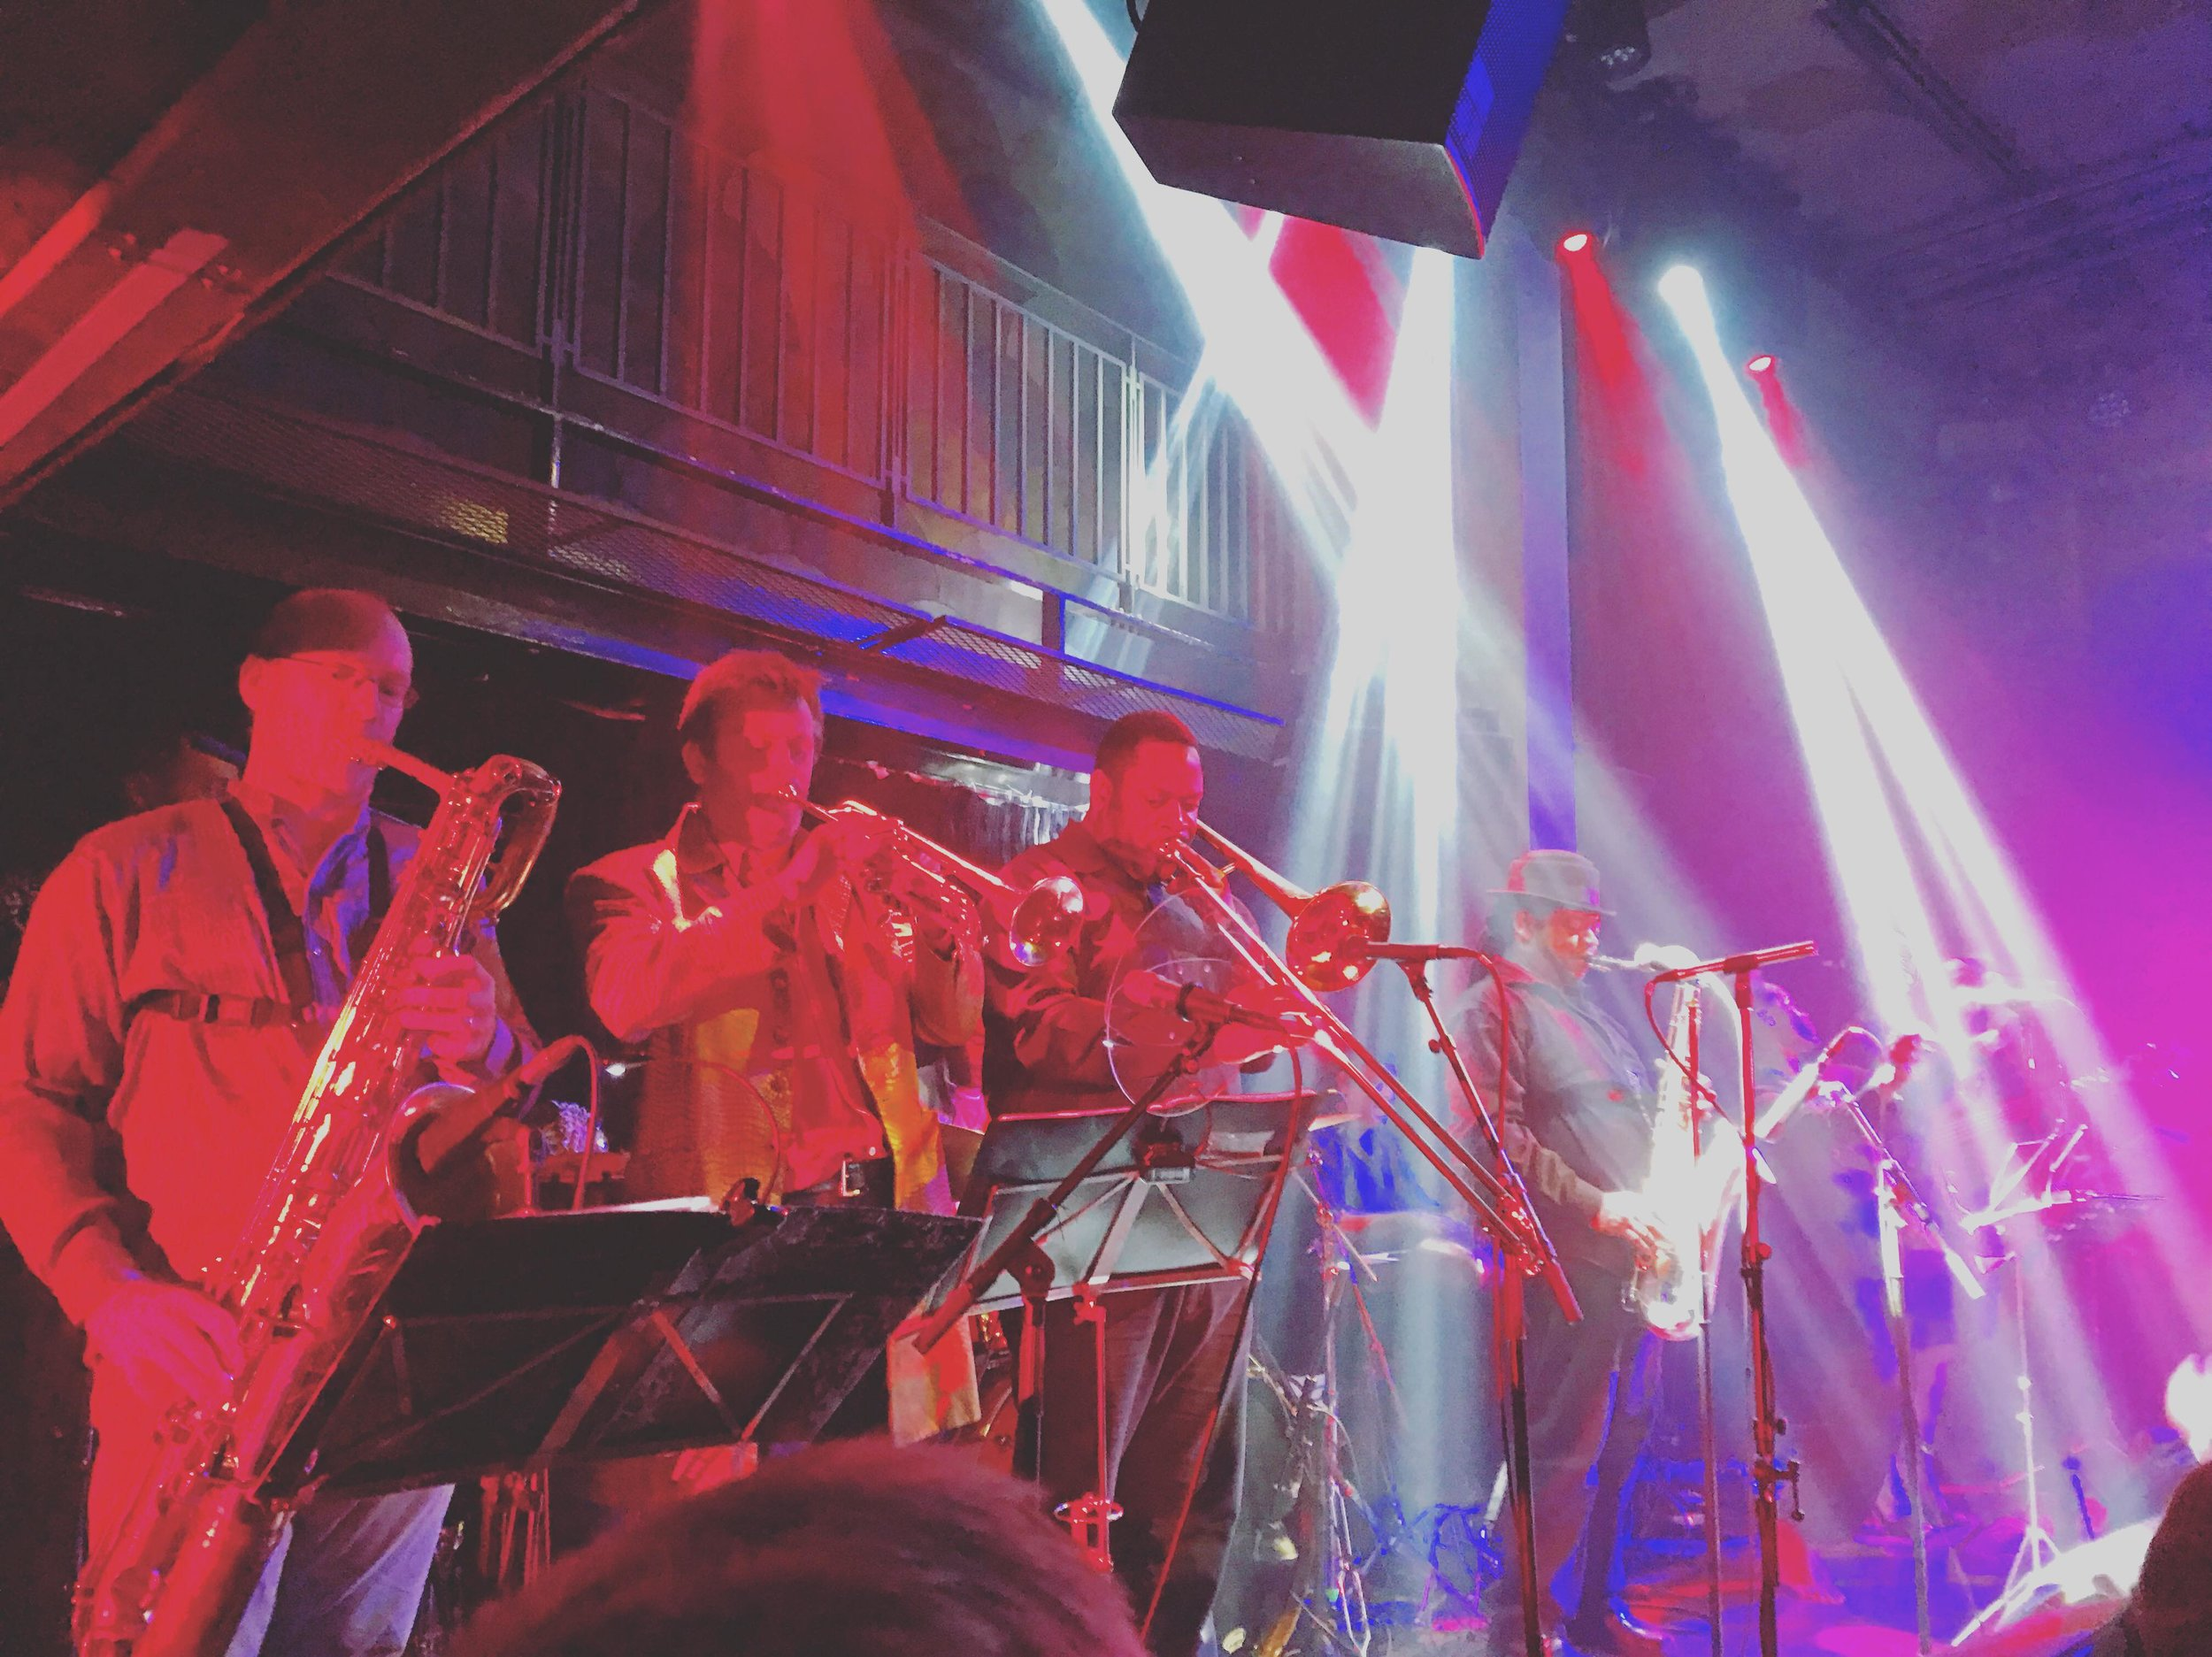 Bukky Leo and the Black Egypt live at the Jazz Cafe 19.03.18 .Photo by Sophie Darling.